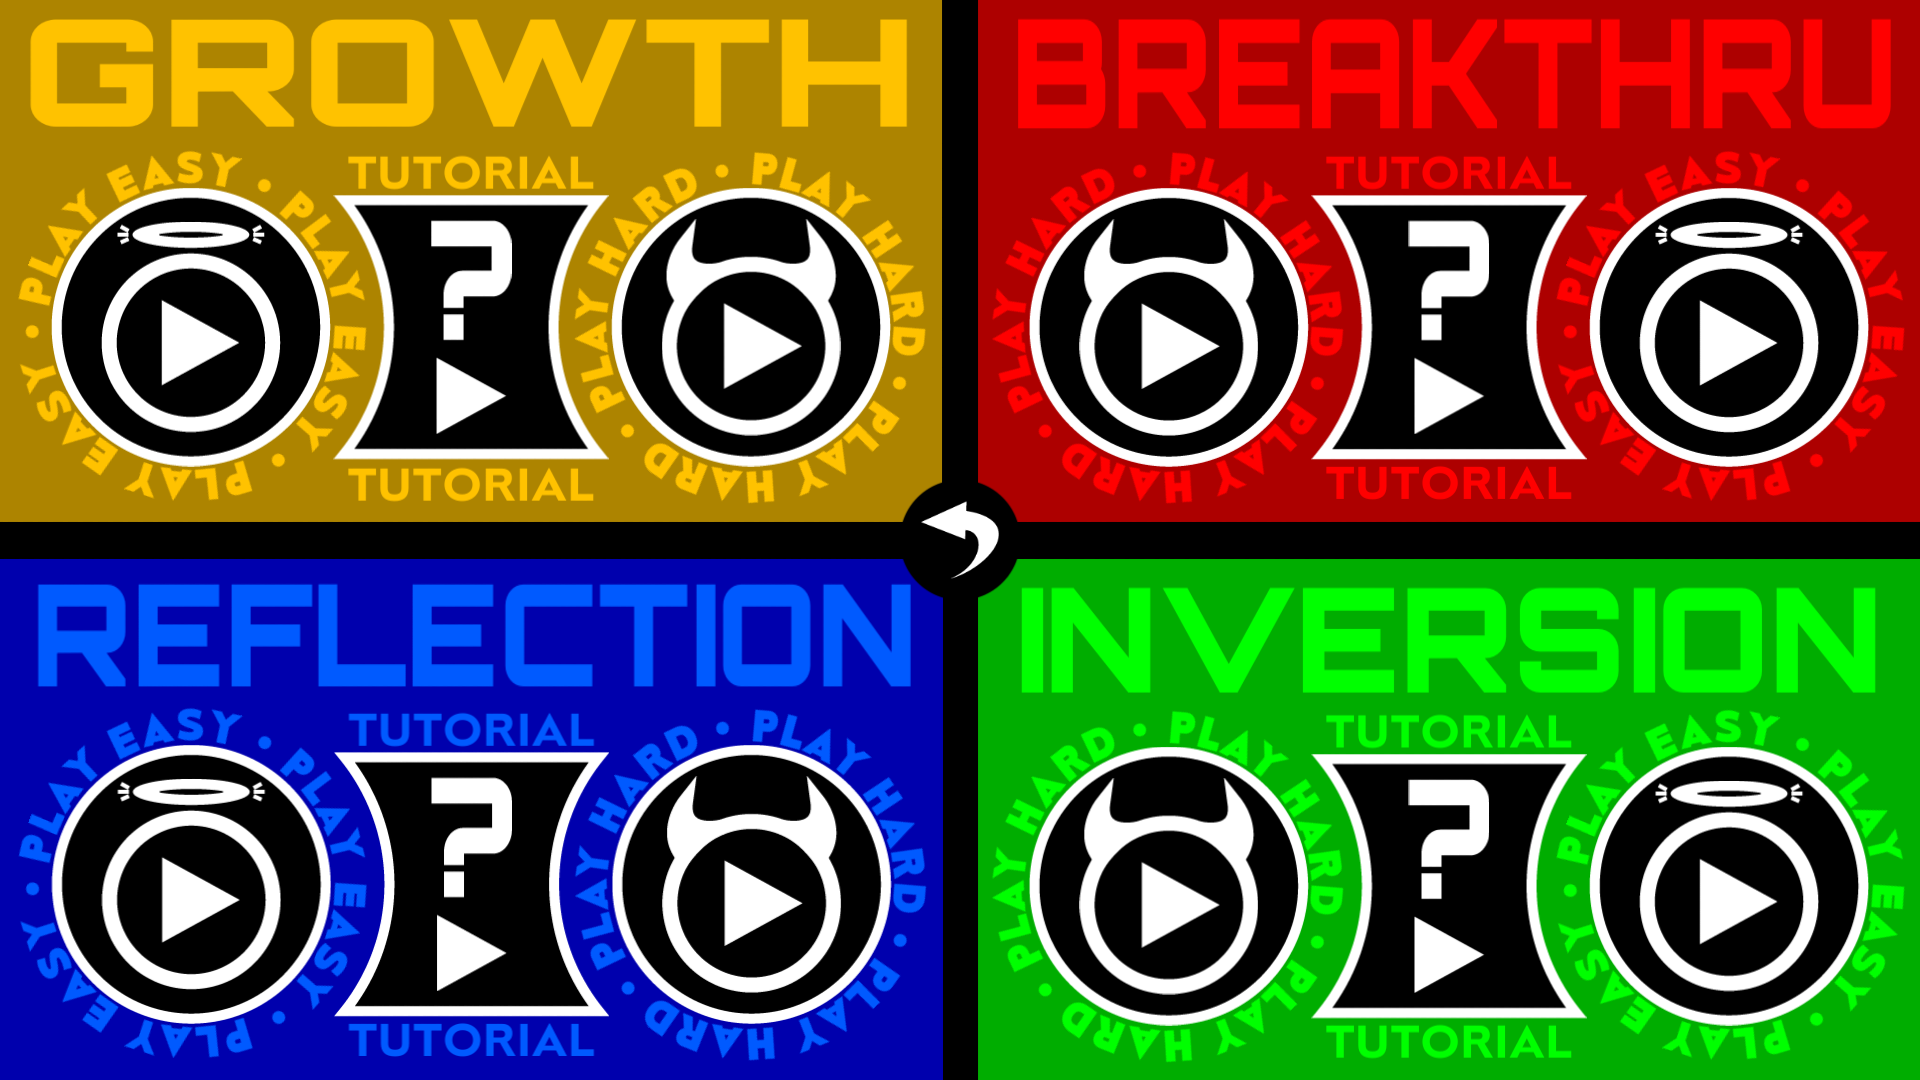 CoreInfluence_GameModes_1920x1080_20161126.png